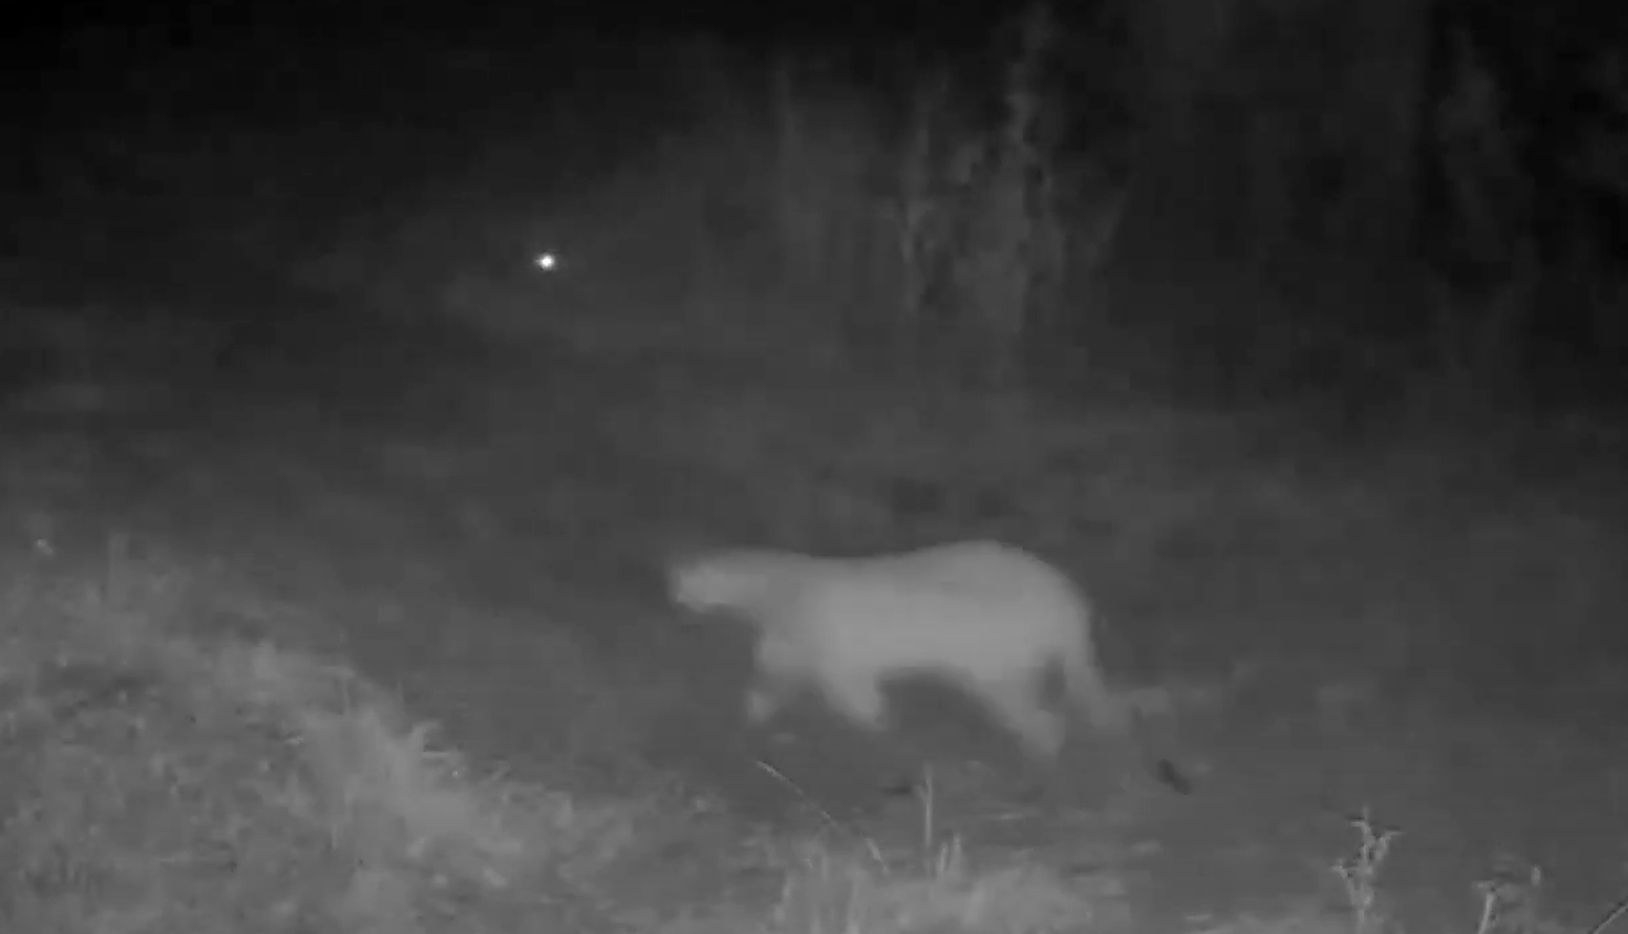 A framegrab from Stephanie Higgins, Rowlett, recent post on her Facebook page from a night vision trail camera video of a mountain lion walking down a dirt road at night. The spooky image showed a big cat with a long tail that touched the ground, a feature that distinguishes it from a bobcat for which the mountain lion is commonly mistaken. The Texas Parks and Wildlife says it's the first confirmed sighting of a mountain lion in Dallas County in its records.